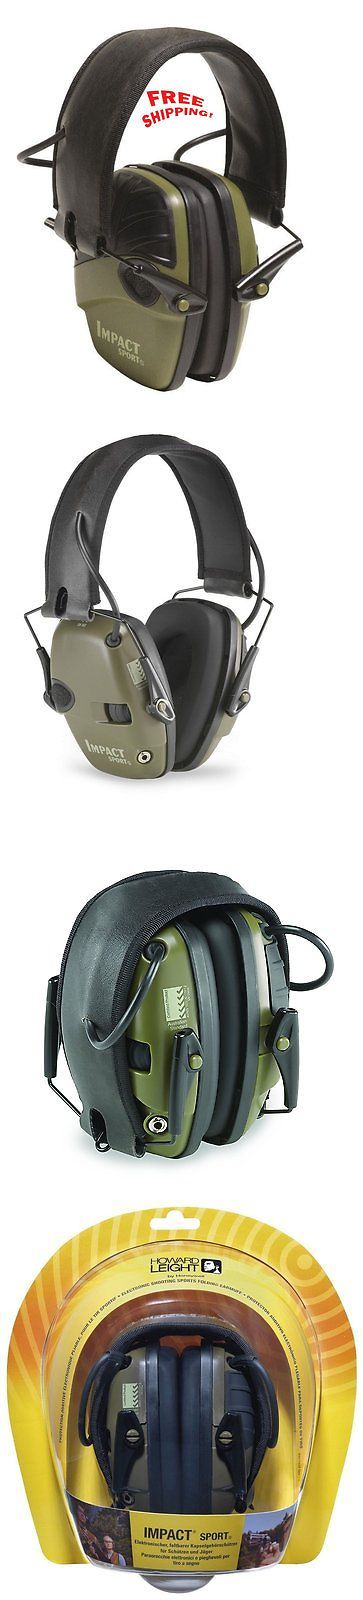 Hearing Protection 73942: Electronic Ear Muffs Shooting Protection Noise Cancelling Head Gear Impact Sport BUY IT NOW ONLY: $53.87